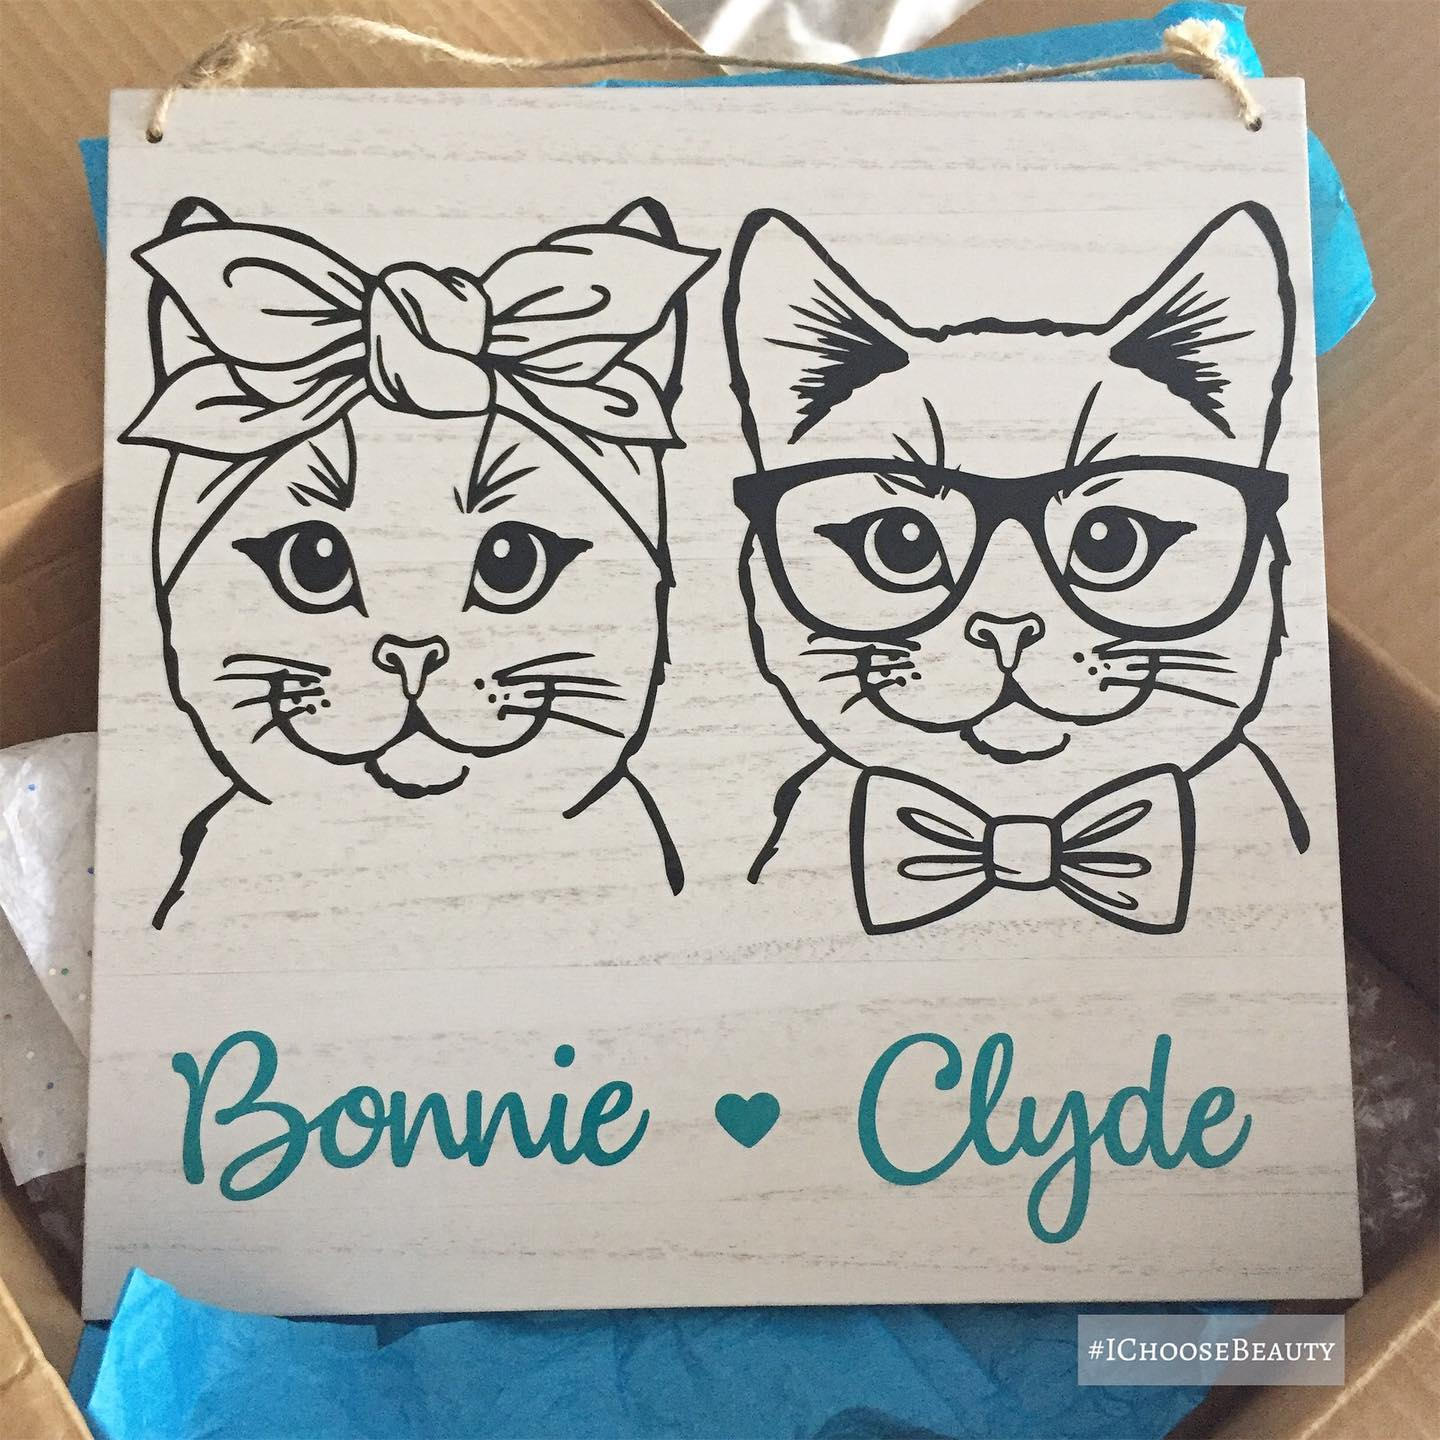 Look what just arrived!  Our new cat kids sign, made by the lovely and talented @shellnicole511 @shellnicolecreations! Bonnie and Clyde are thrilled, of course.  #ichoosebeauty Day 2733